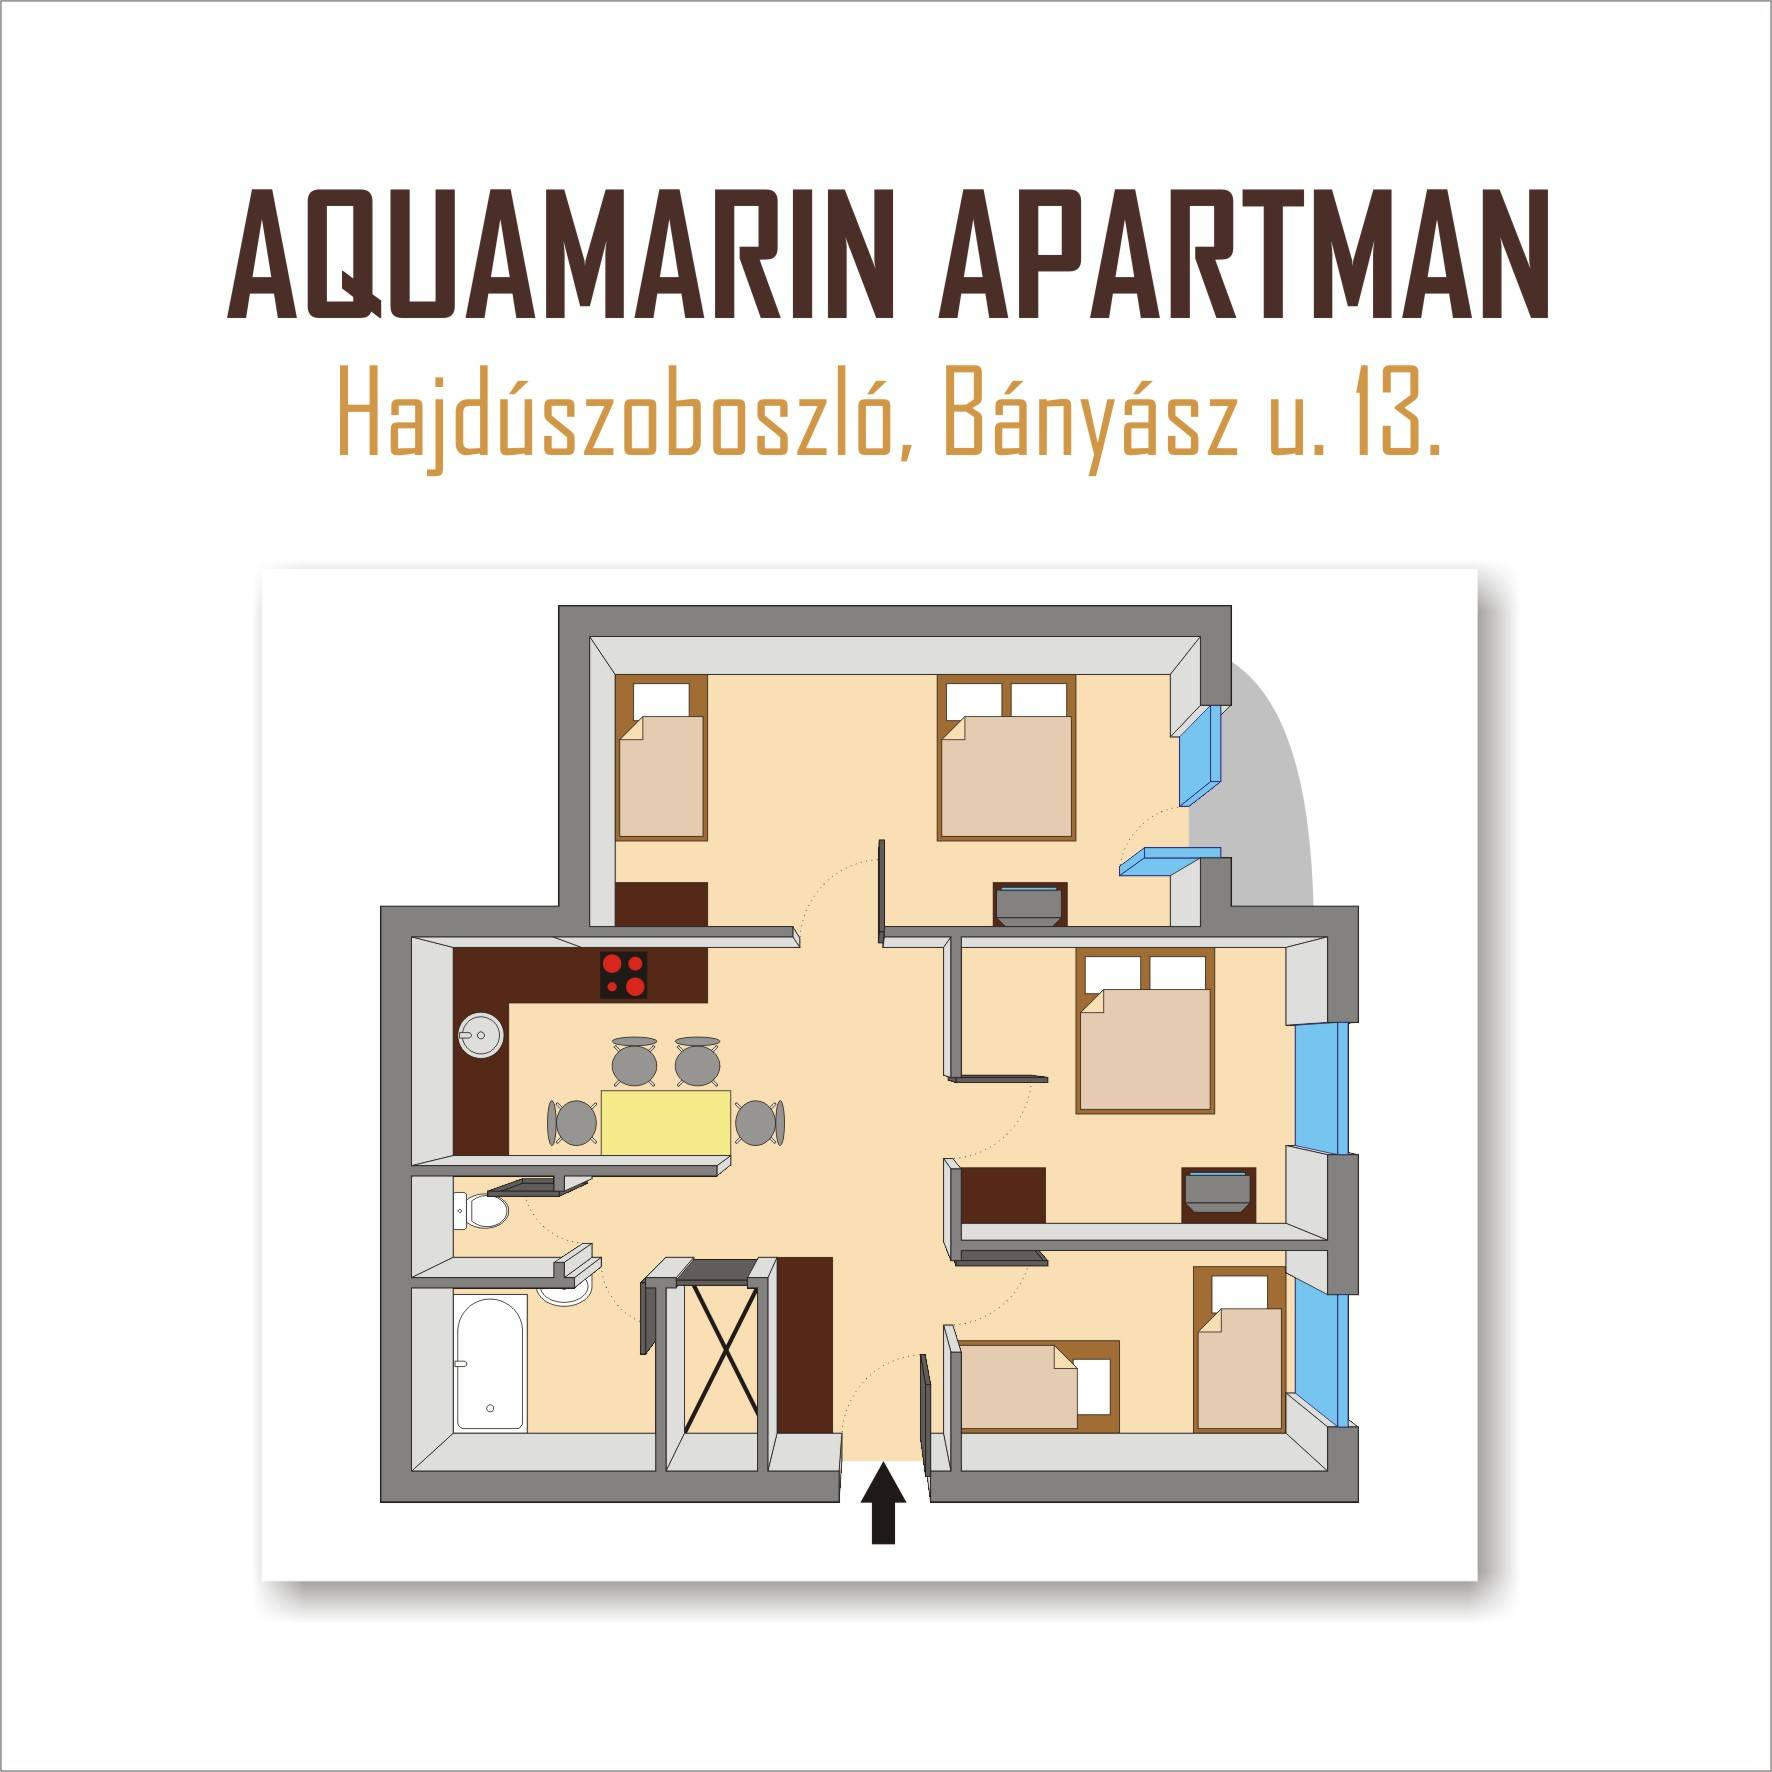 Aquamarin Apartman Hajdszoboszl - Az apartman alaprajza